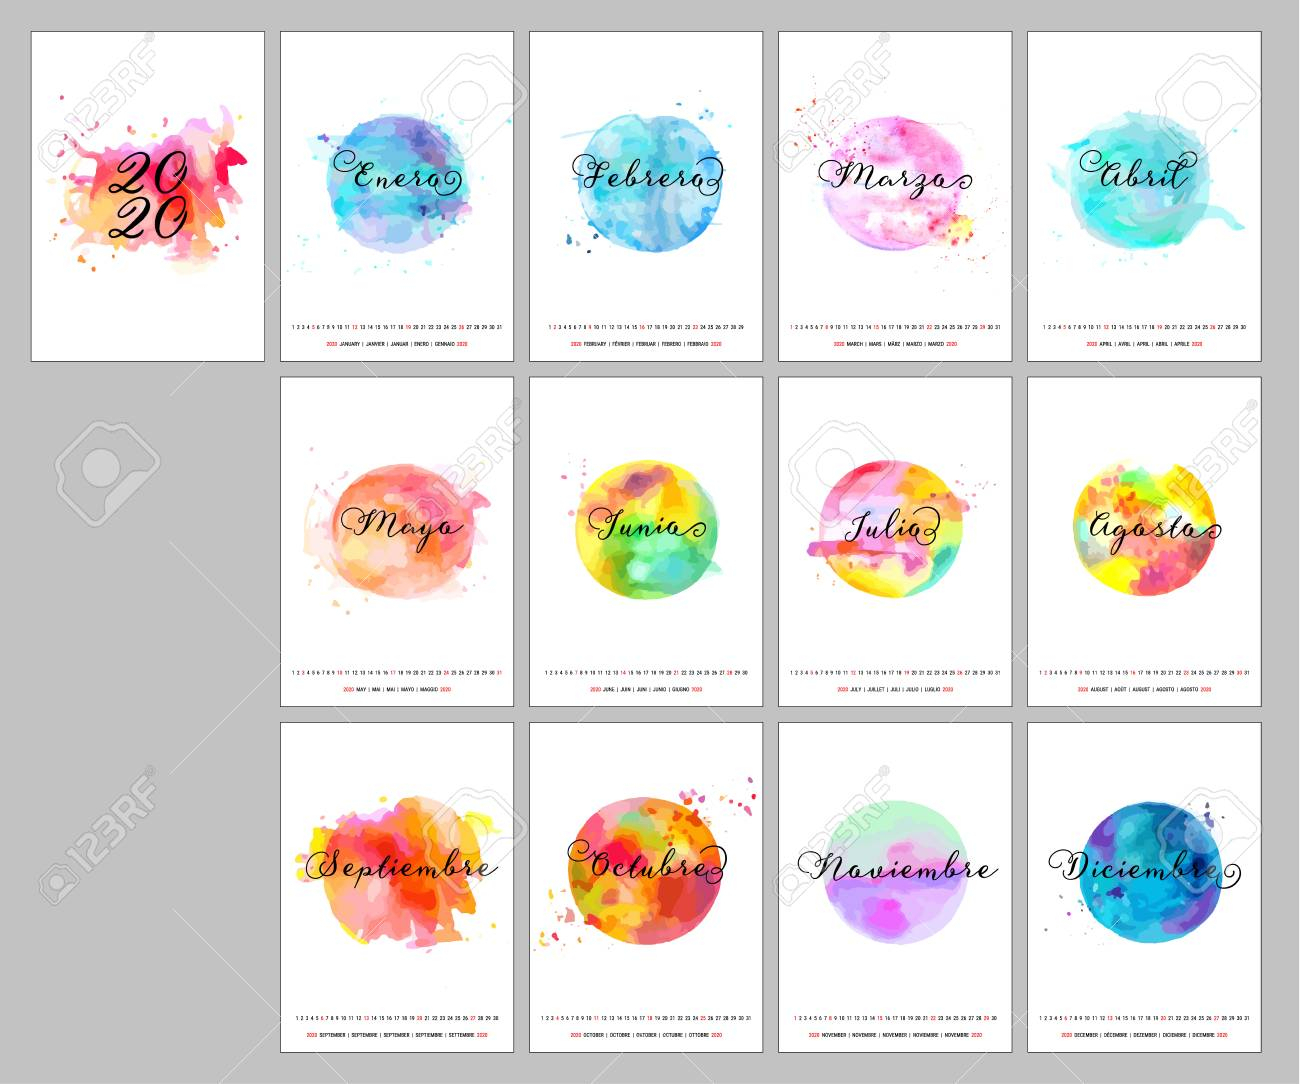 Spanish Calendar Design For The Year 2020, A Template With Calligraphy,..